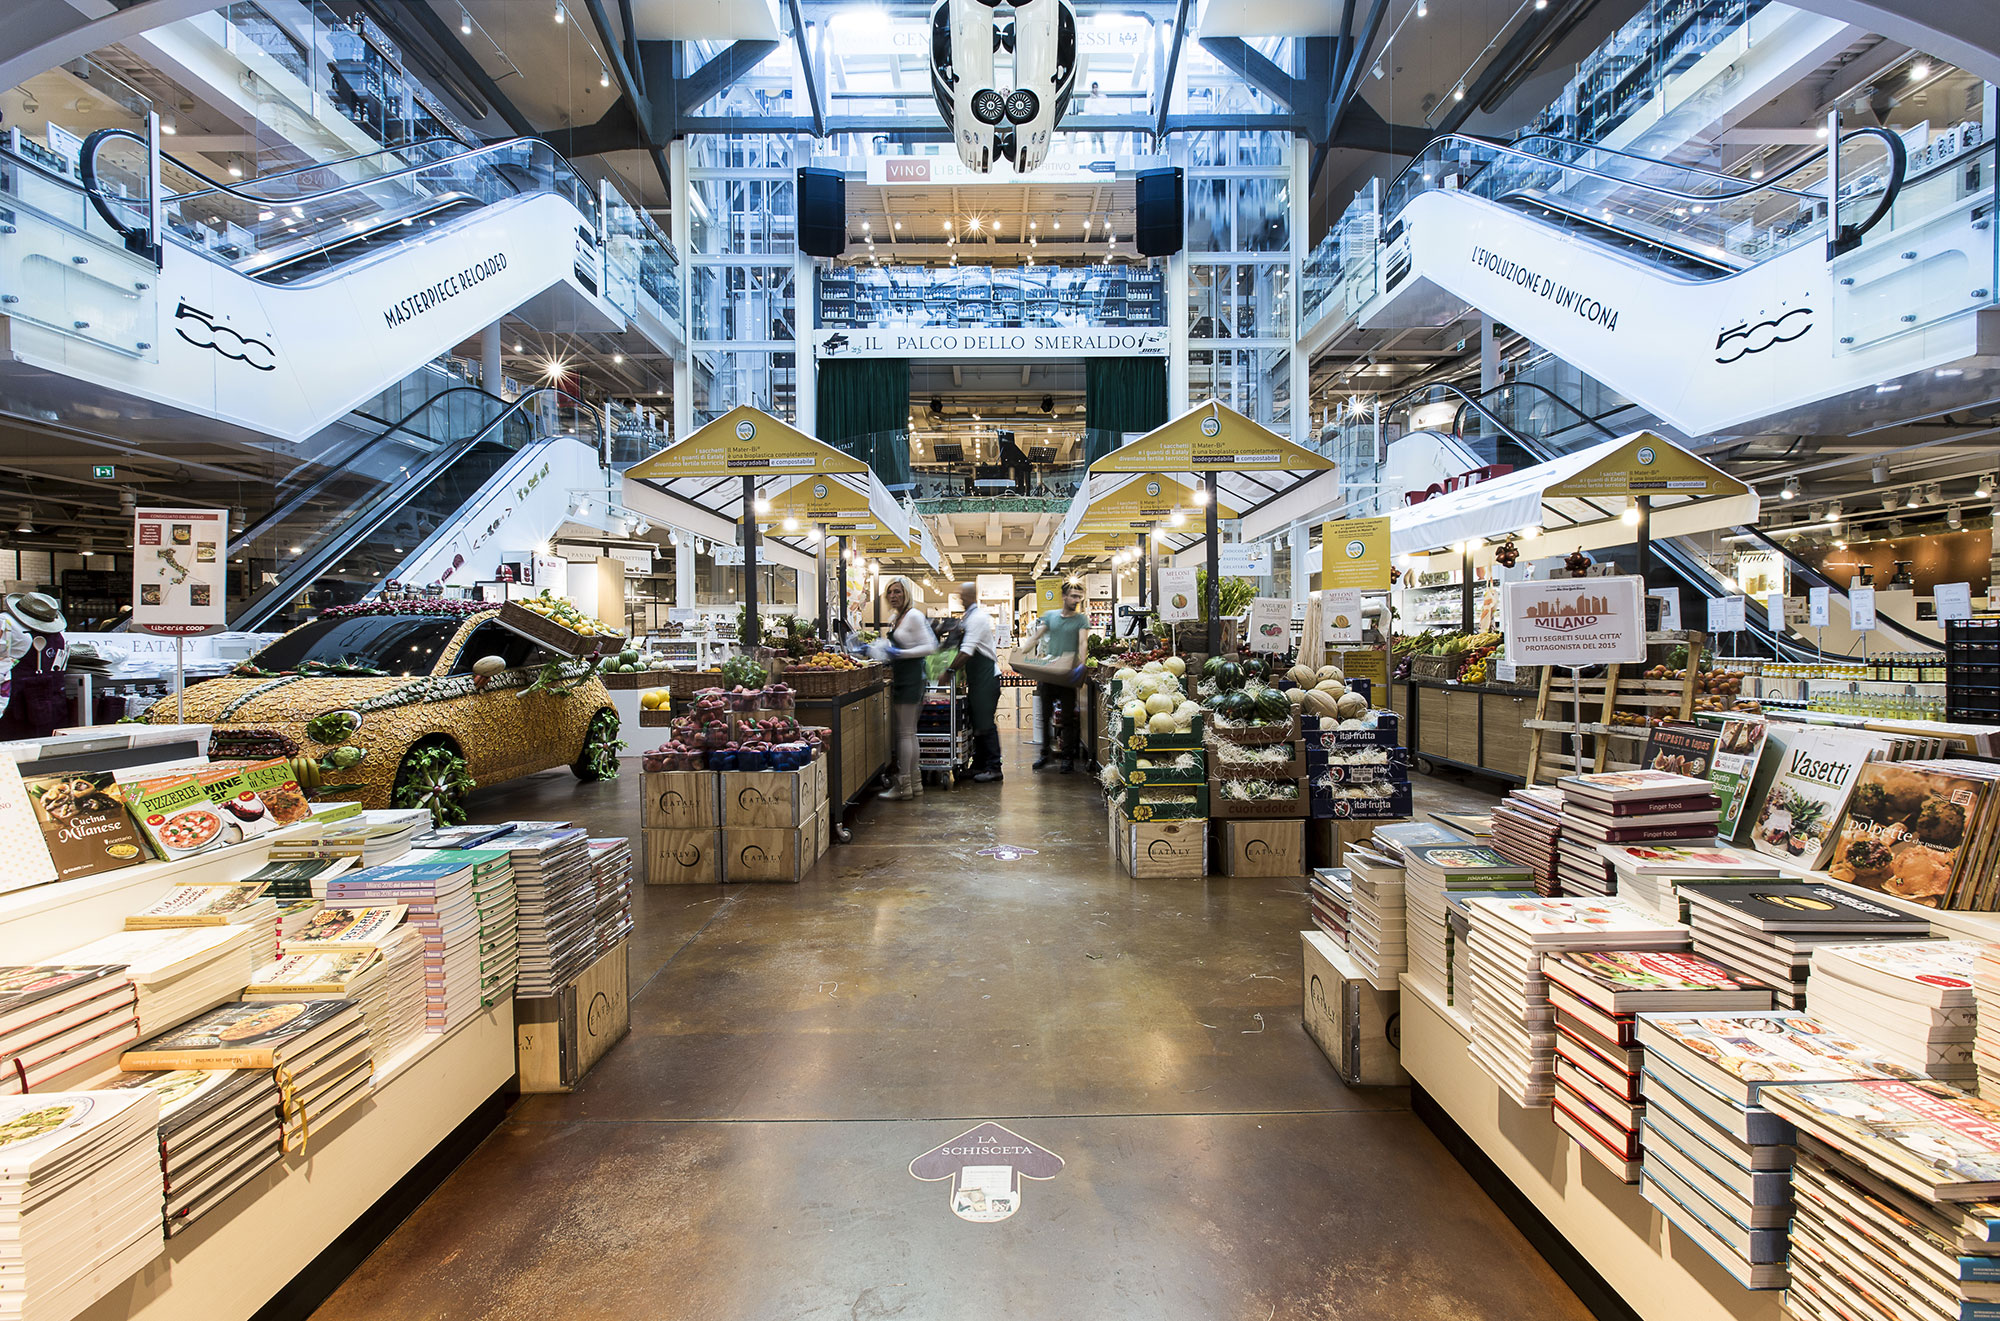 Escalators & Lifts for Eataly in Milan, Italy